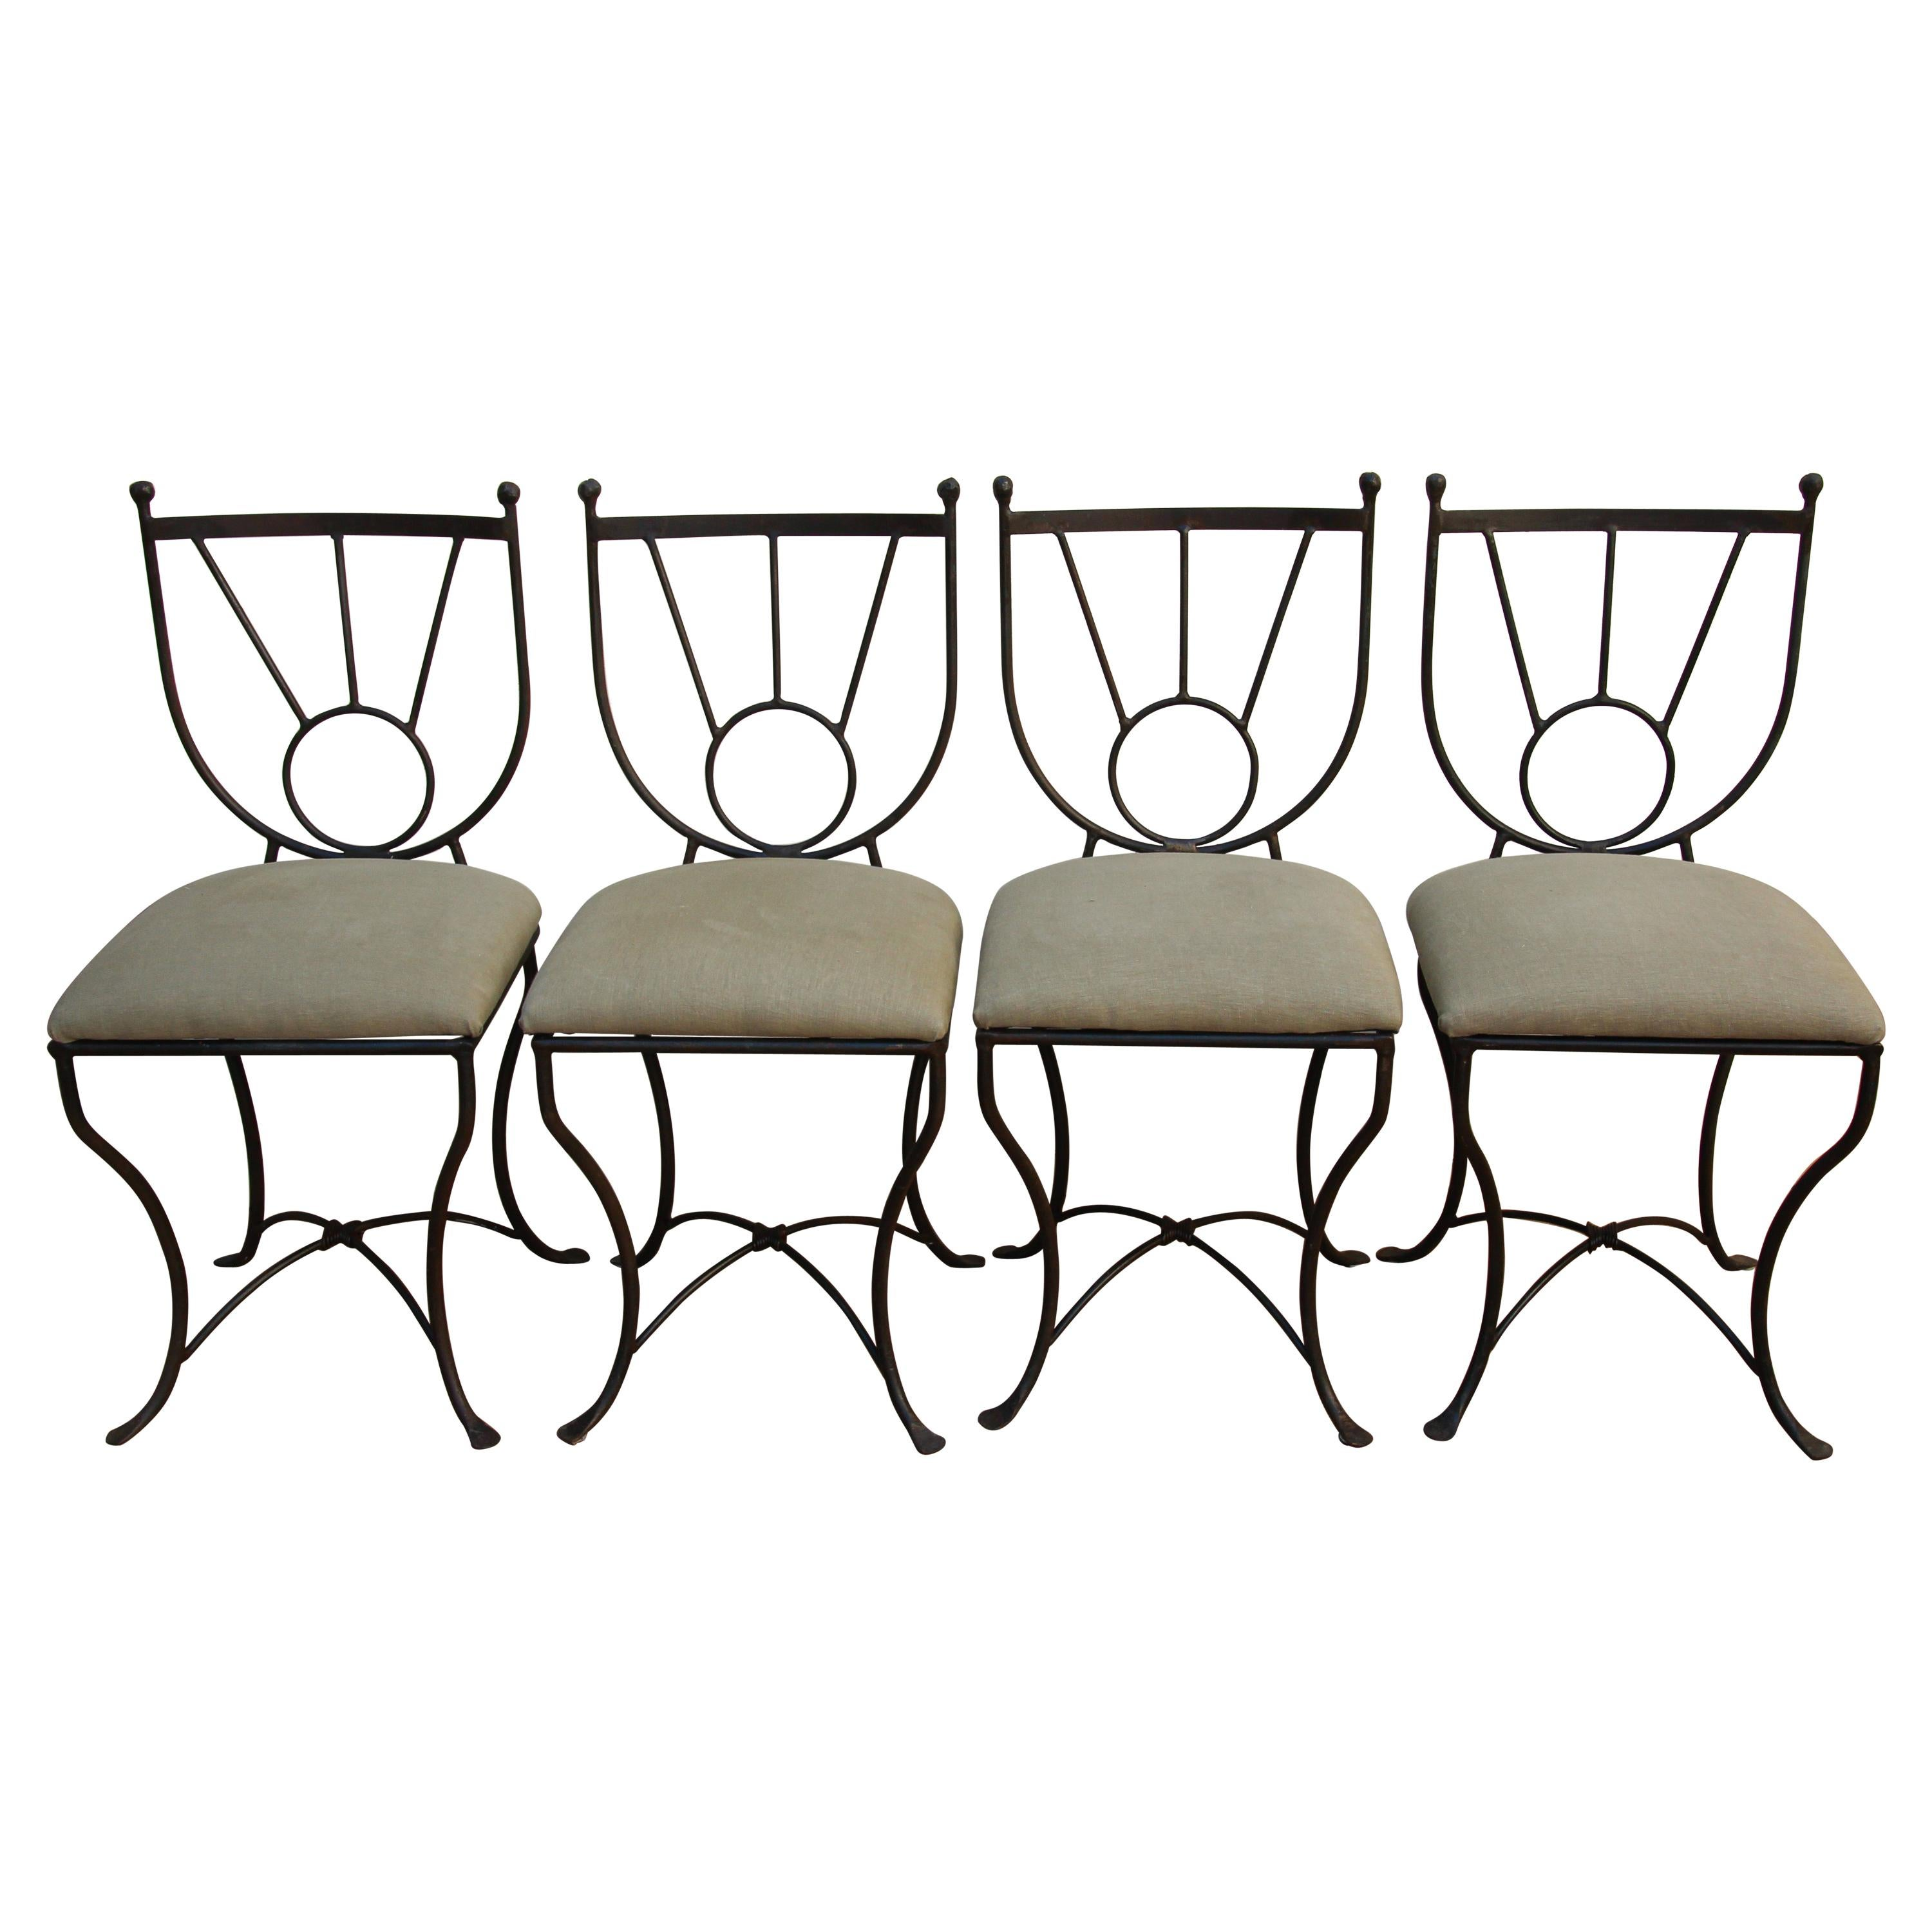 Outdoor Wrought Iron Chairs Set of Four in Mario Papperzini Style